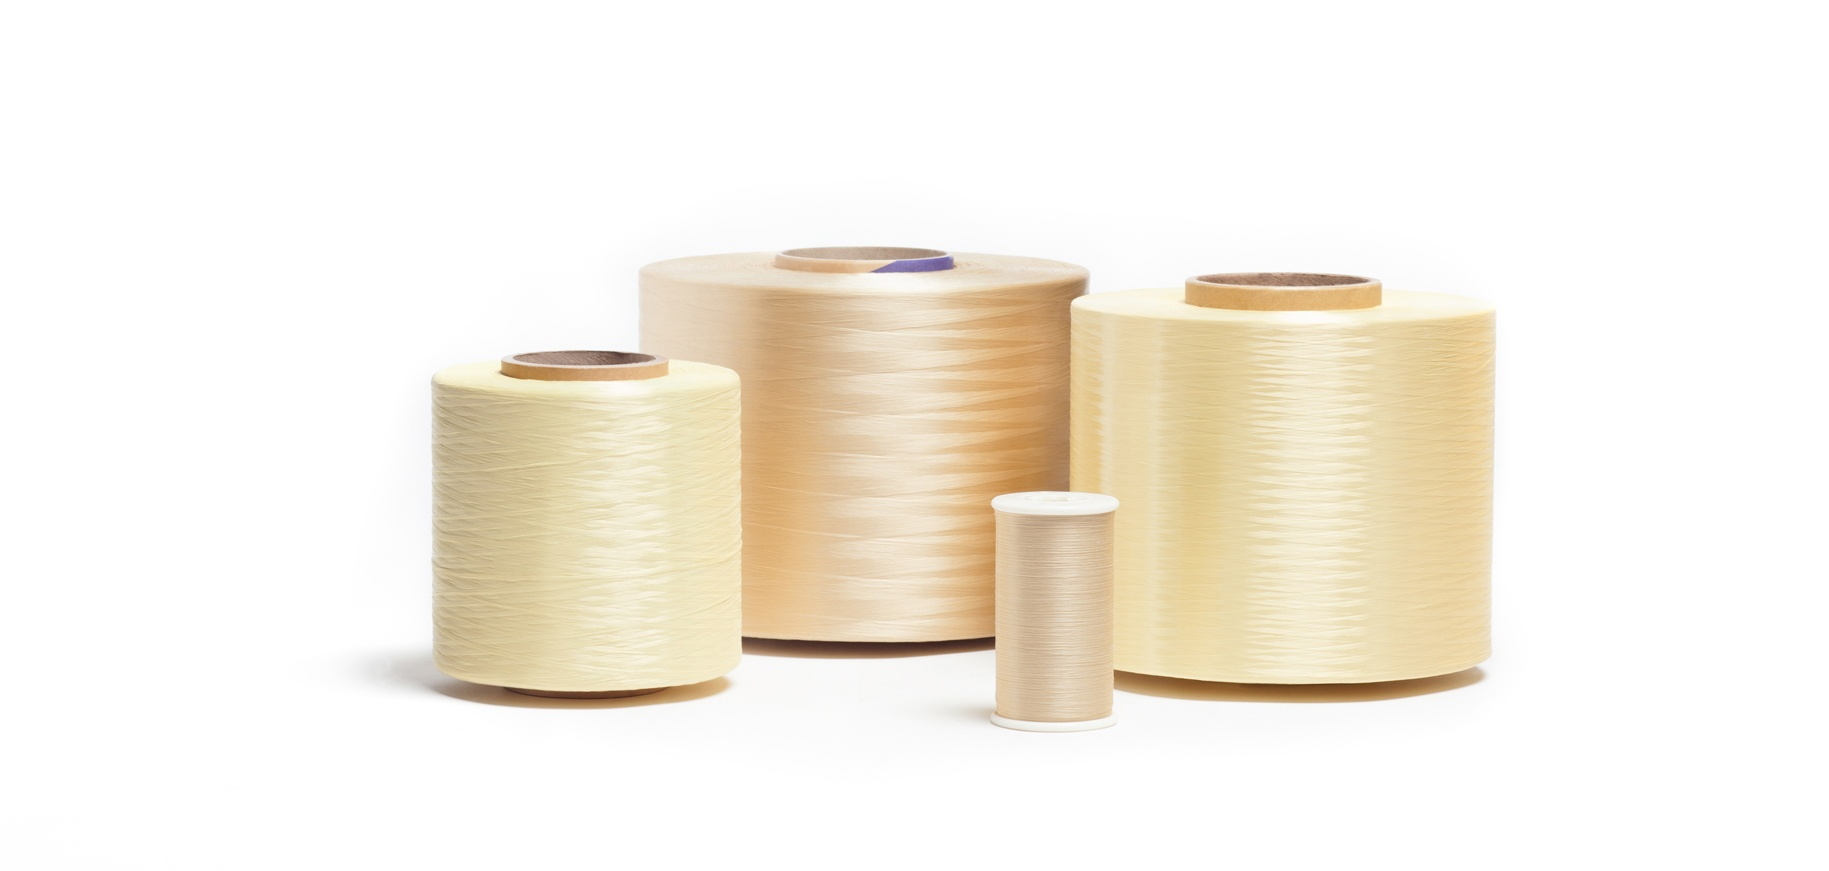 Fire retardant yarn and thread